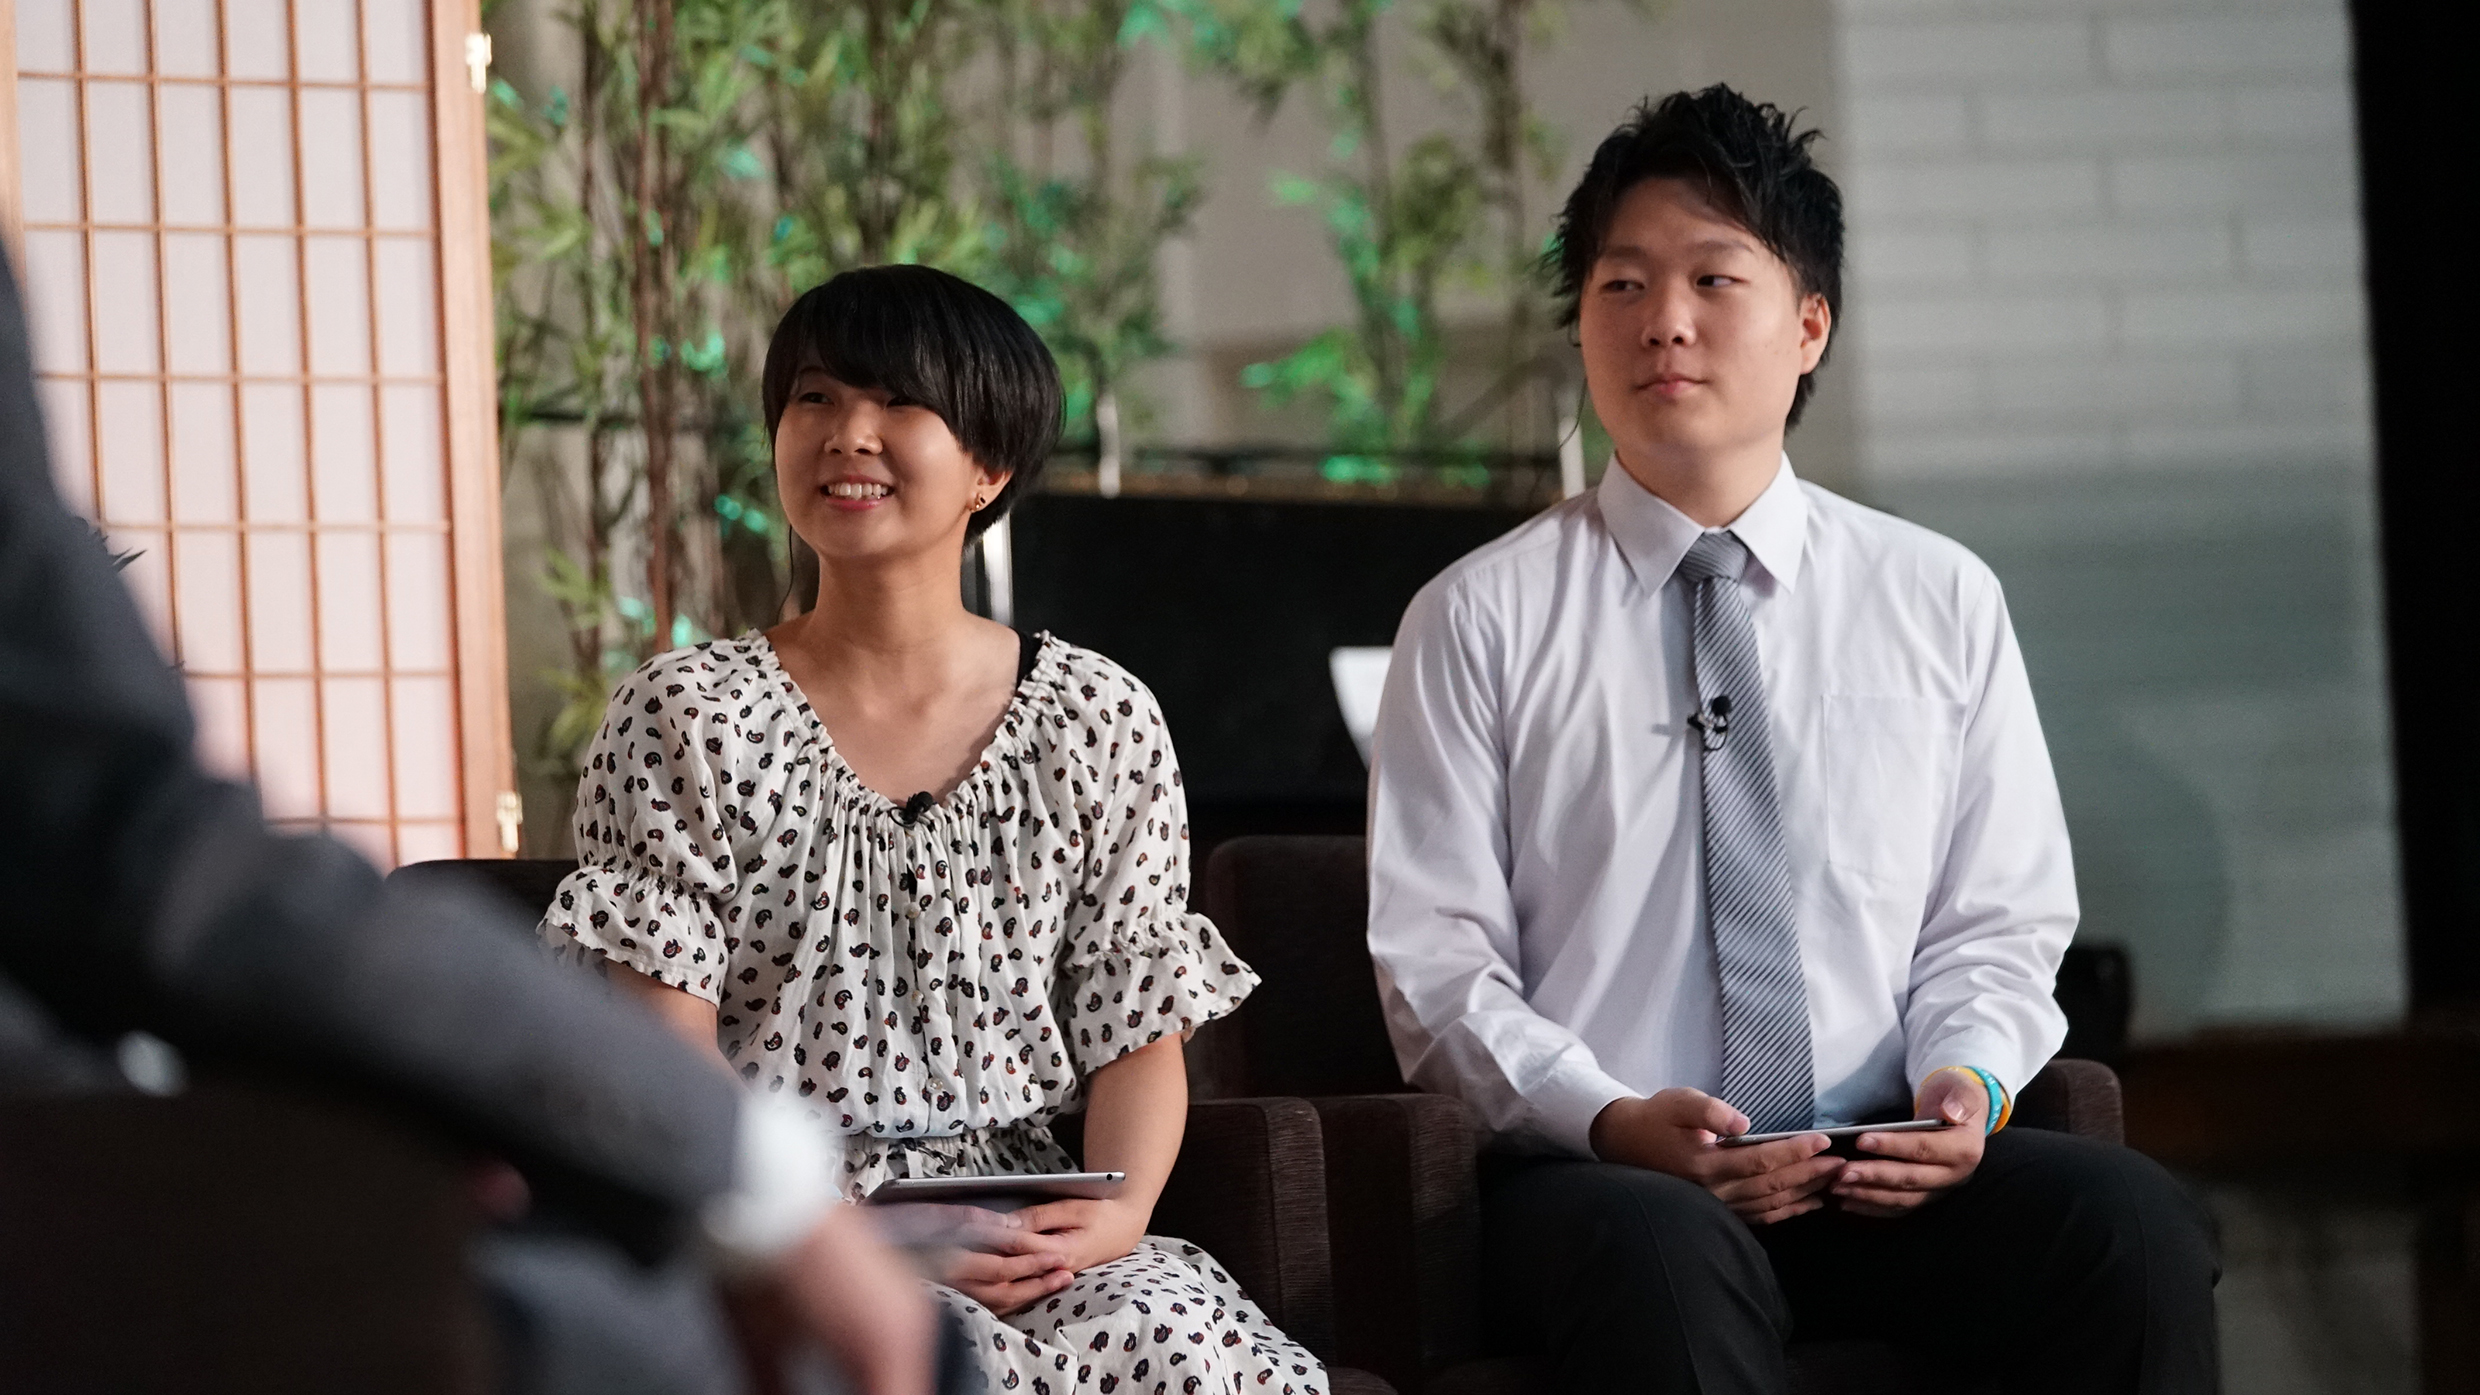 Youth hosts, Miyu Nakiatania and Mashahiro Yoshikawa, during the Face to Face event held in Japan on Aug. 14.